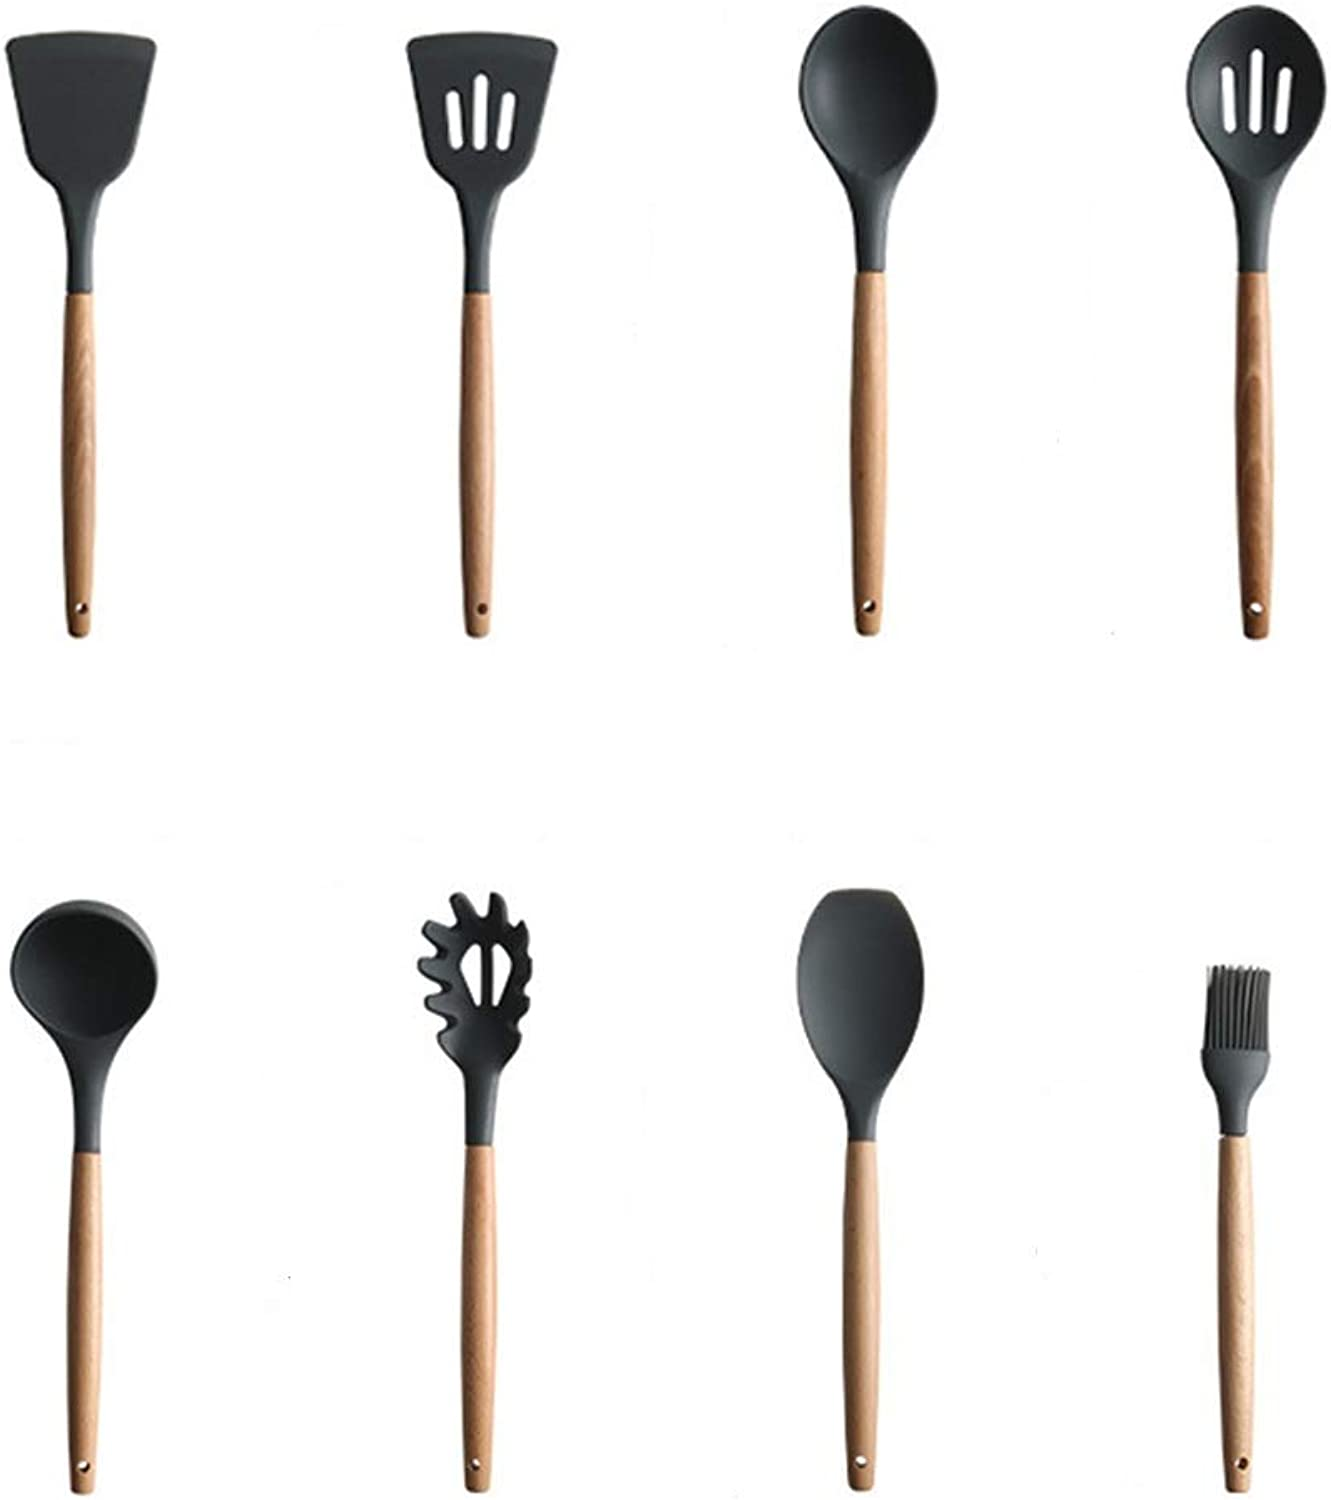 8 Piece Set of Silicone kitchenware - Natural Wooden Handle - Non-Stick Shovel Spoon Tool Set Spatula Spoon Black Cooking Silicone Wooden Handle kitchenware